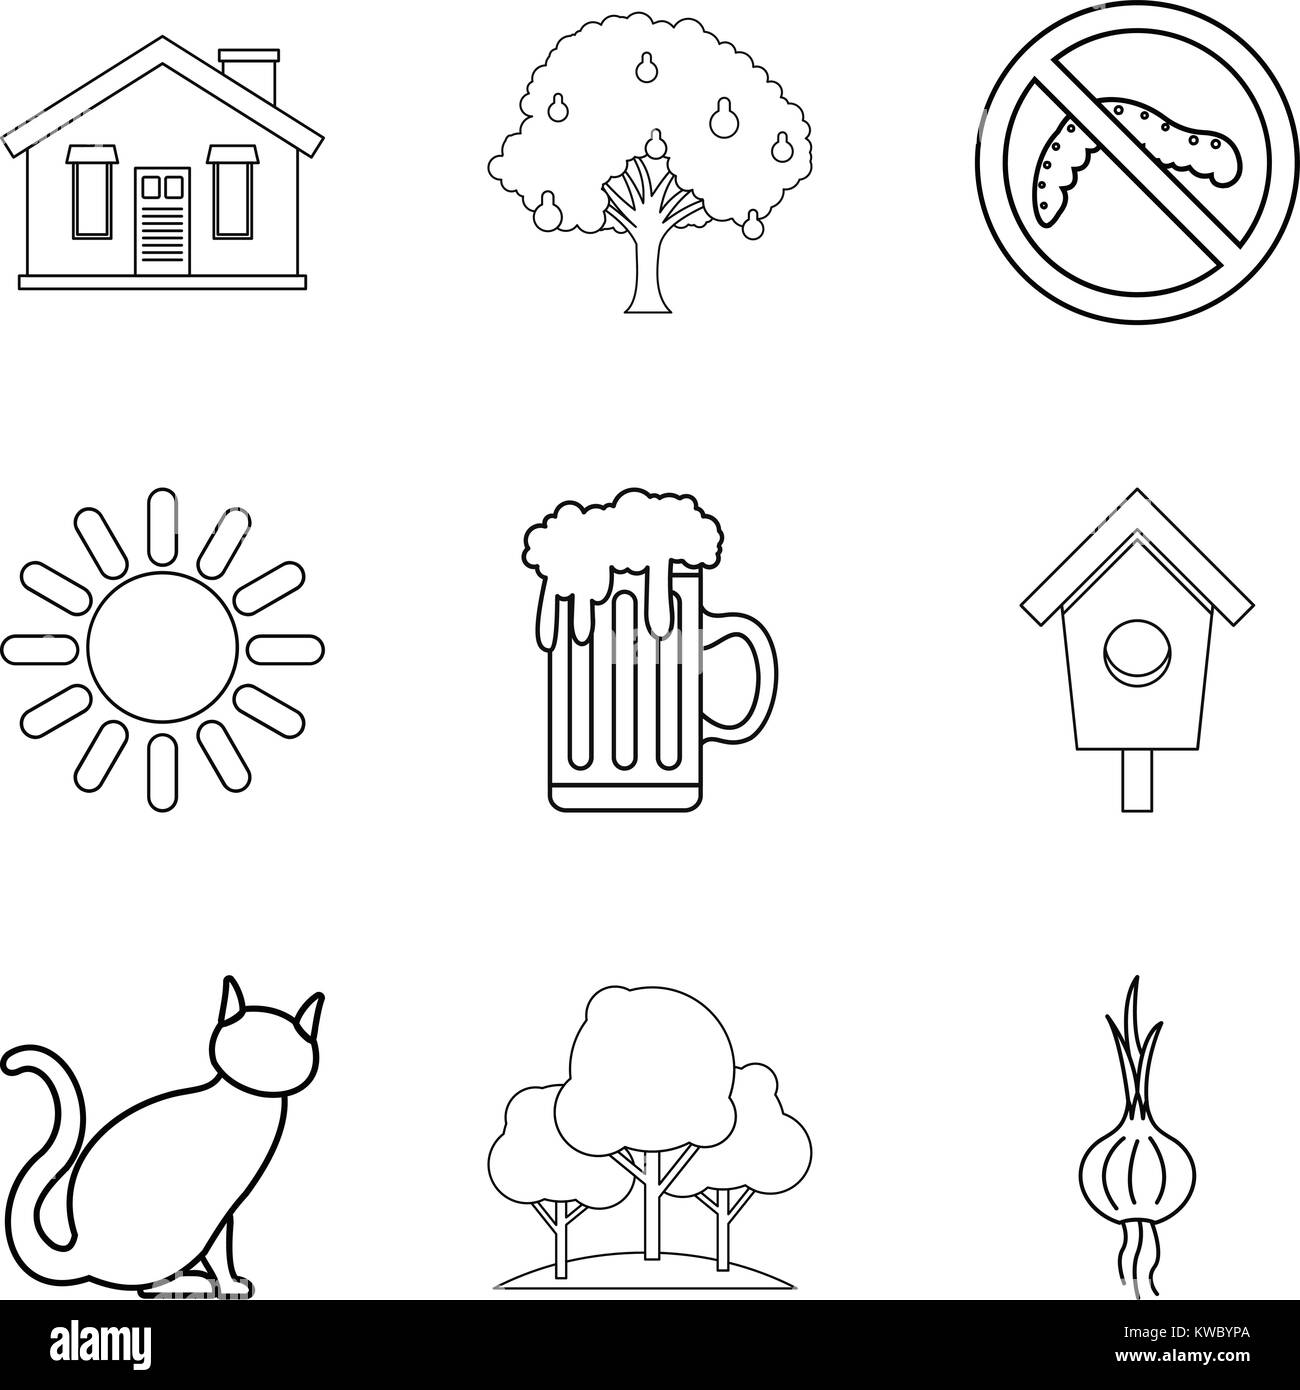 Hamlet icons set, outline style Stock Vector